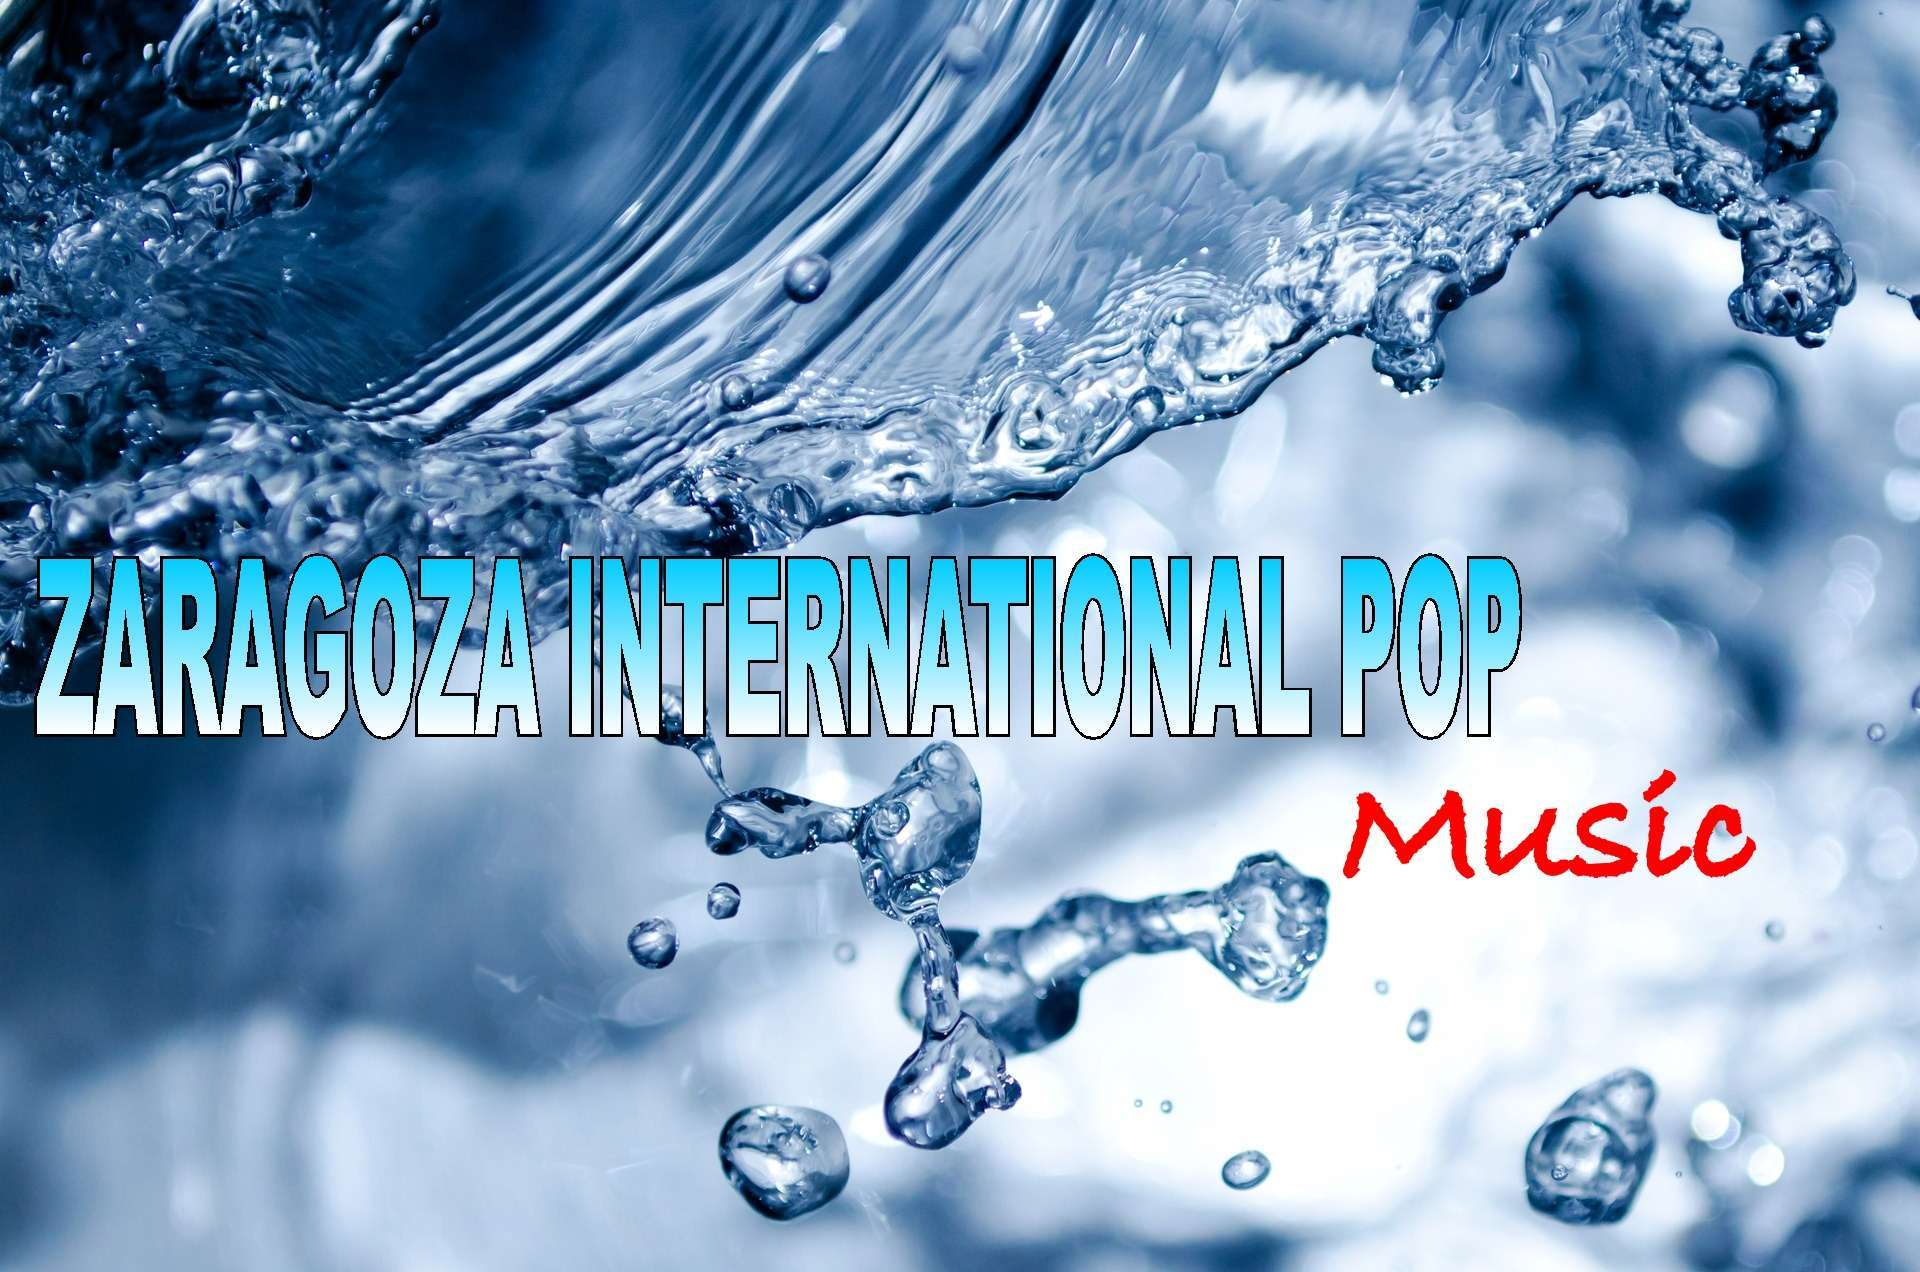 Zaragoza POP International